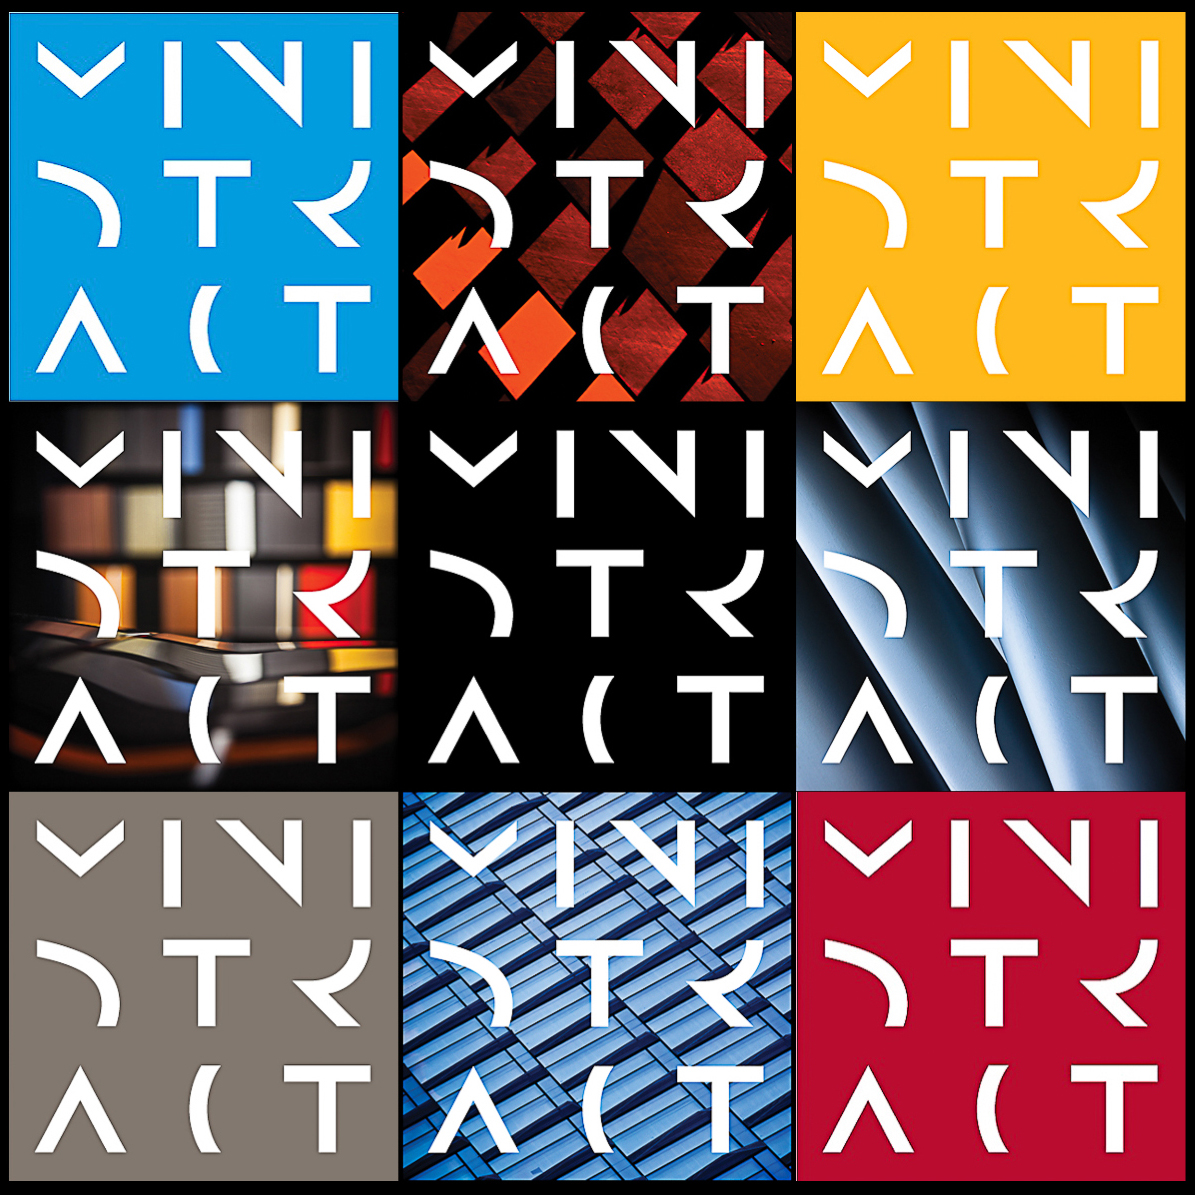 Nine versions of the ministract logo